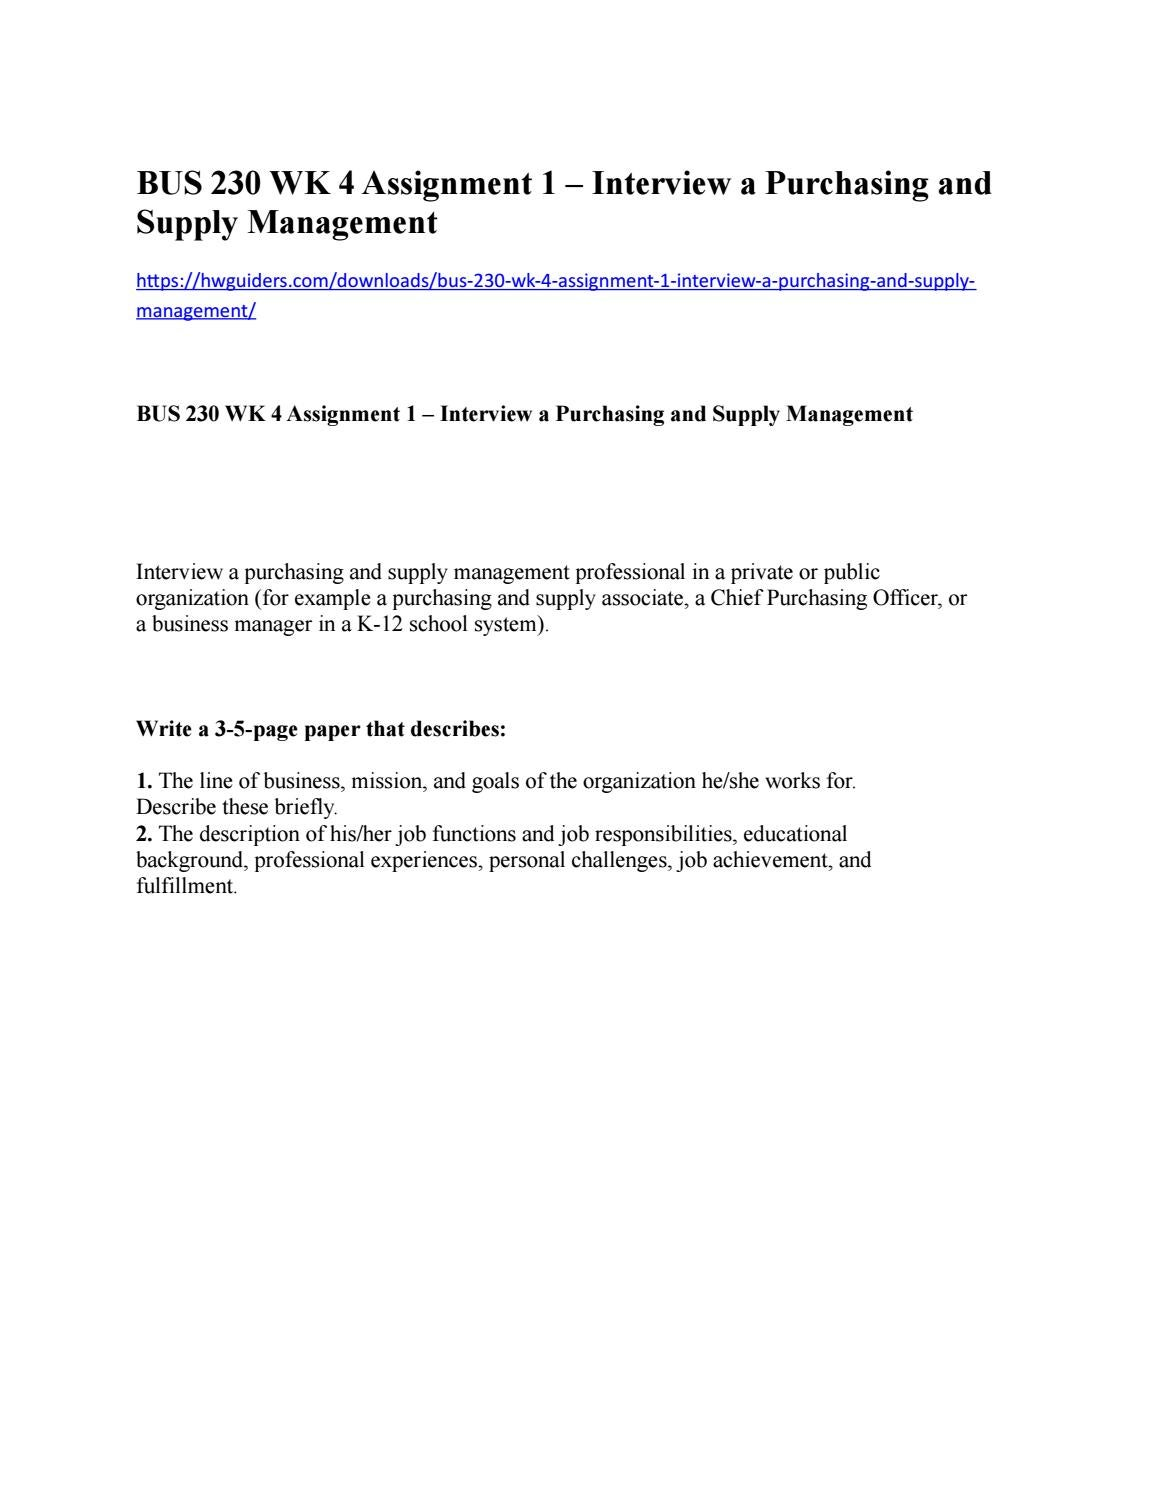 Purchasing Officer Job Description | Bus 230 Wk 4 Assignment 1 Interview A Purchasing And Supply